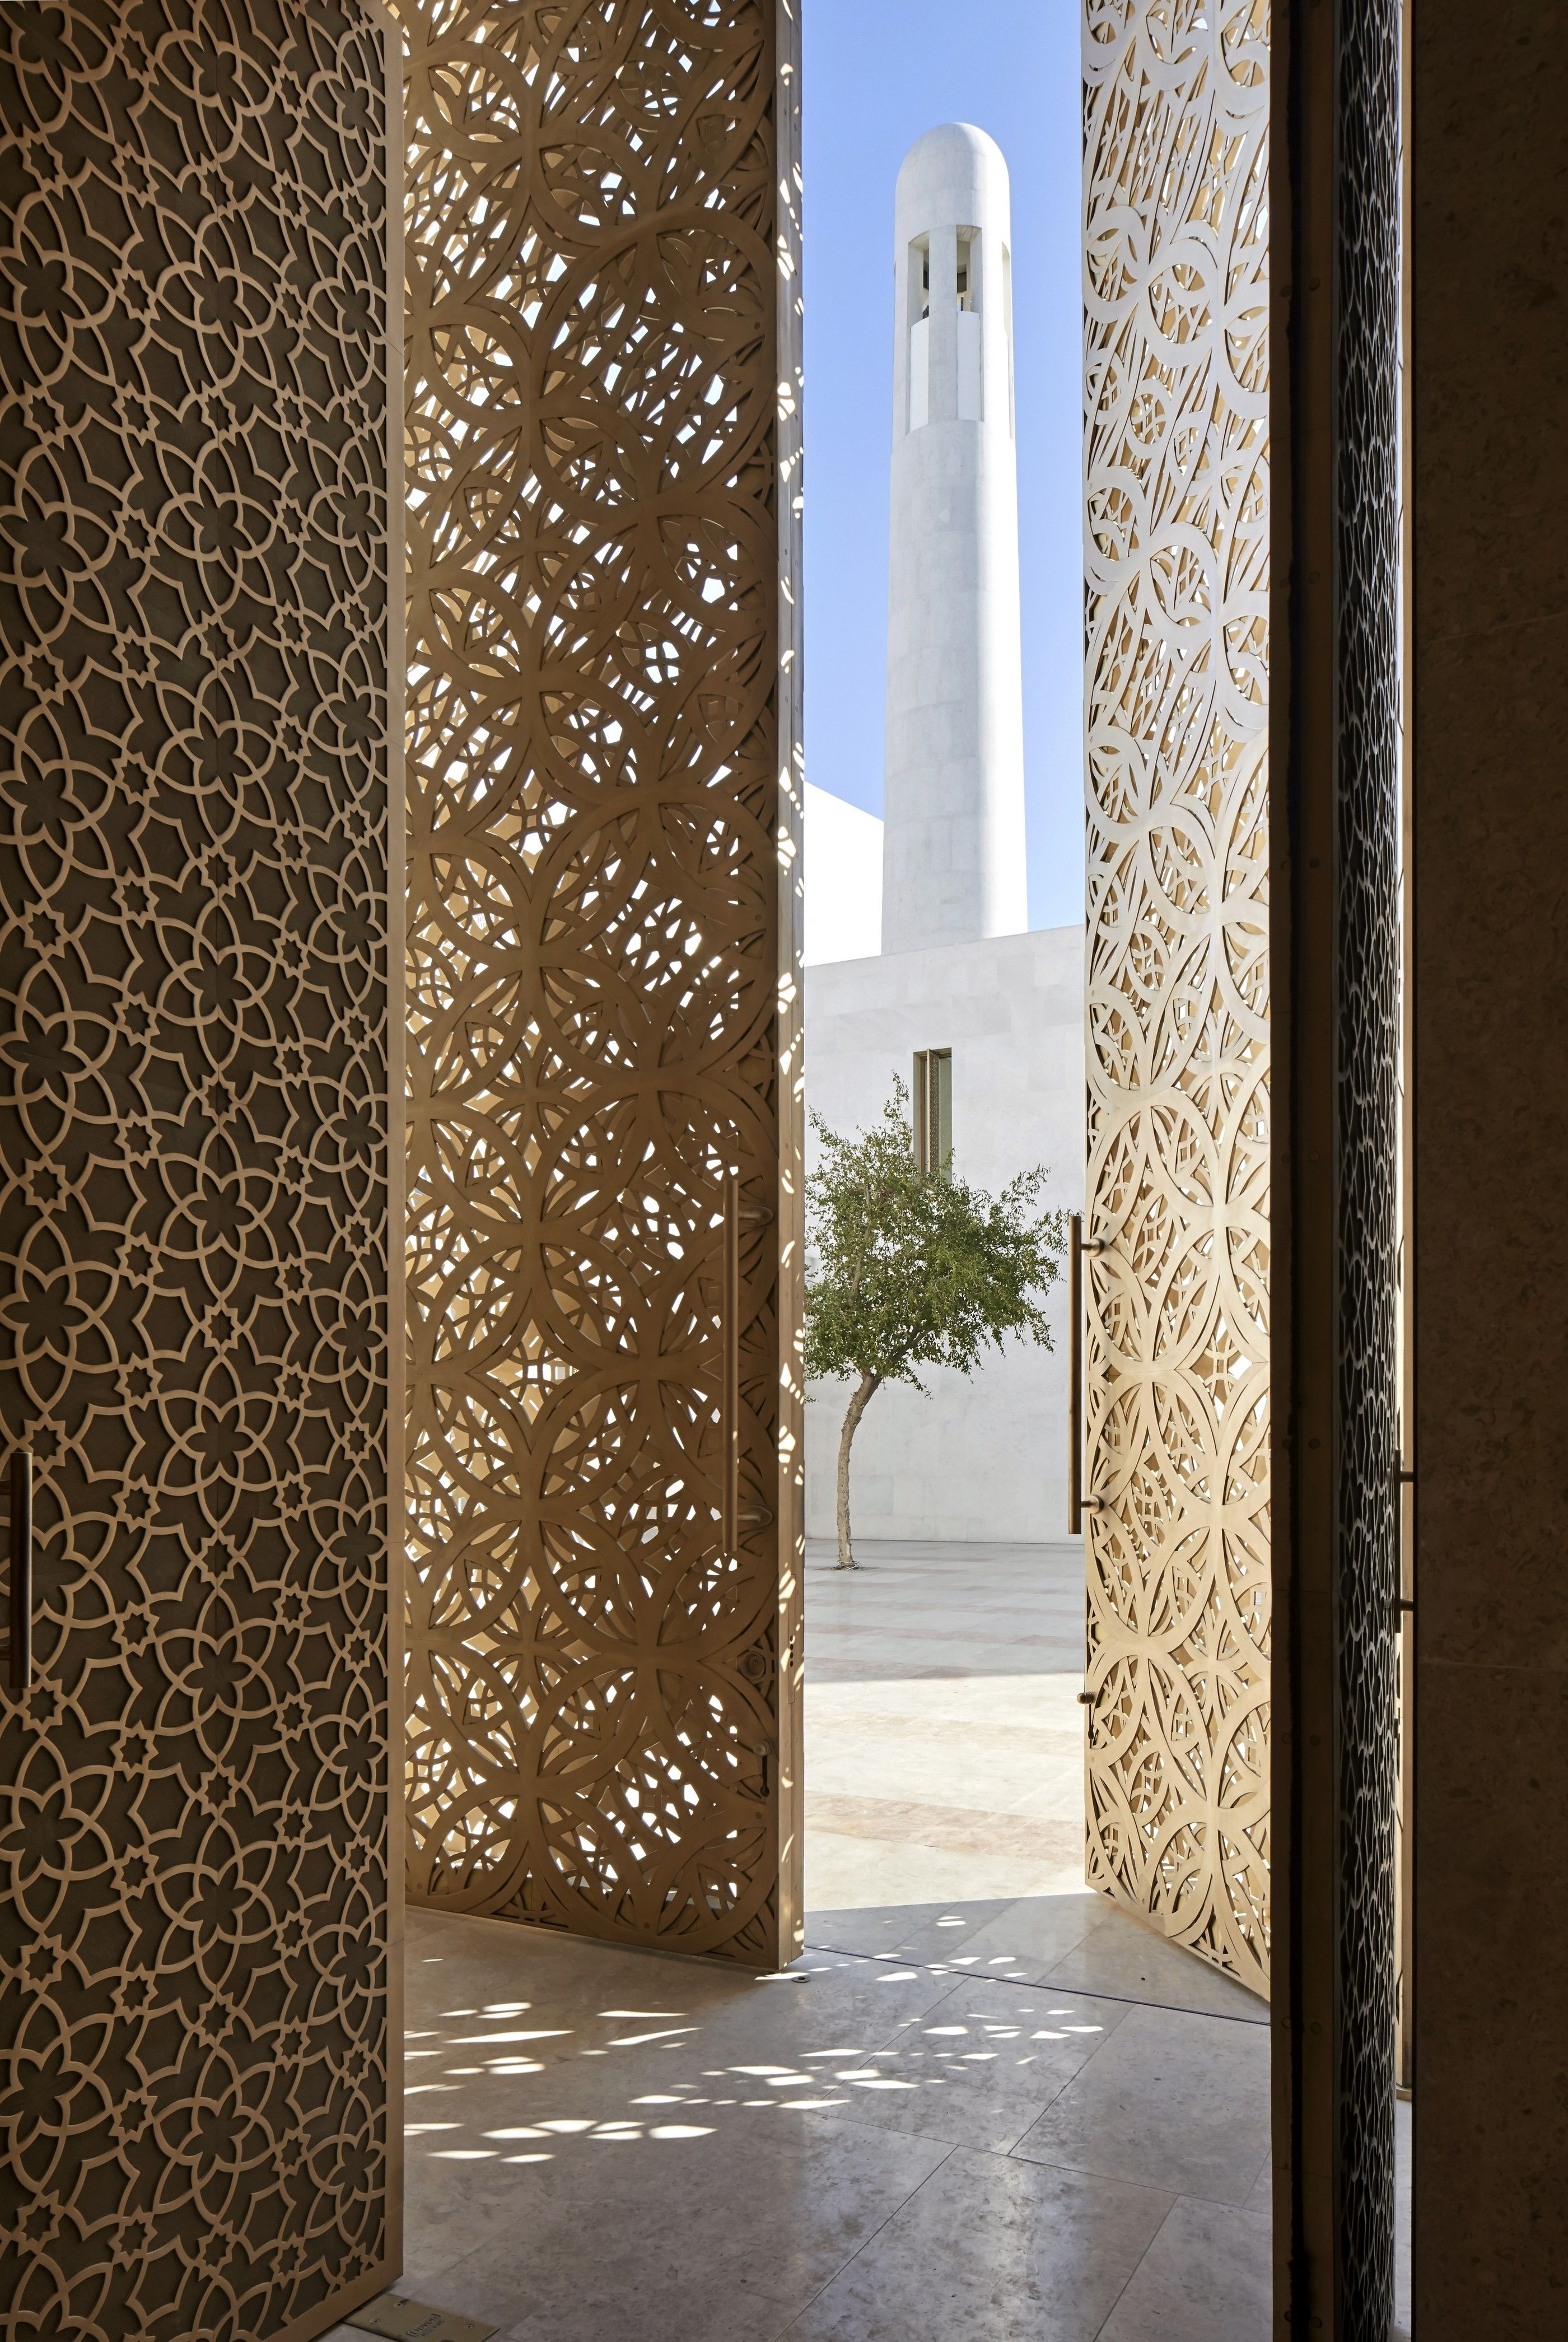 pleasing islamic design house usa. John McAslan  Partners Project Jumaa Mosque Heritage House Museums Image 5 Islamic DesignsIslamic Archello Pinterest and Architecture